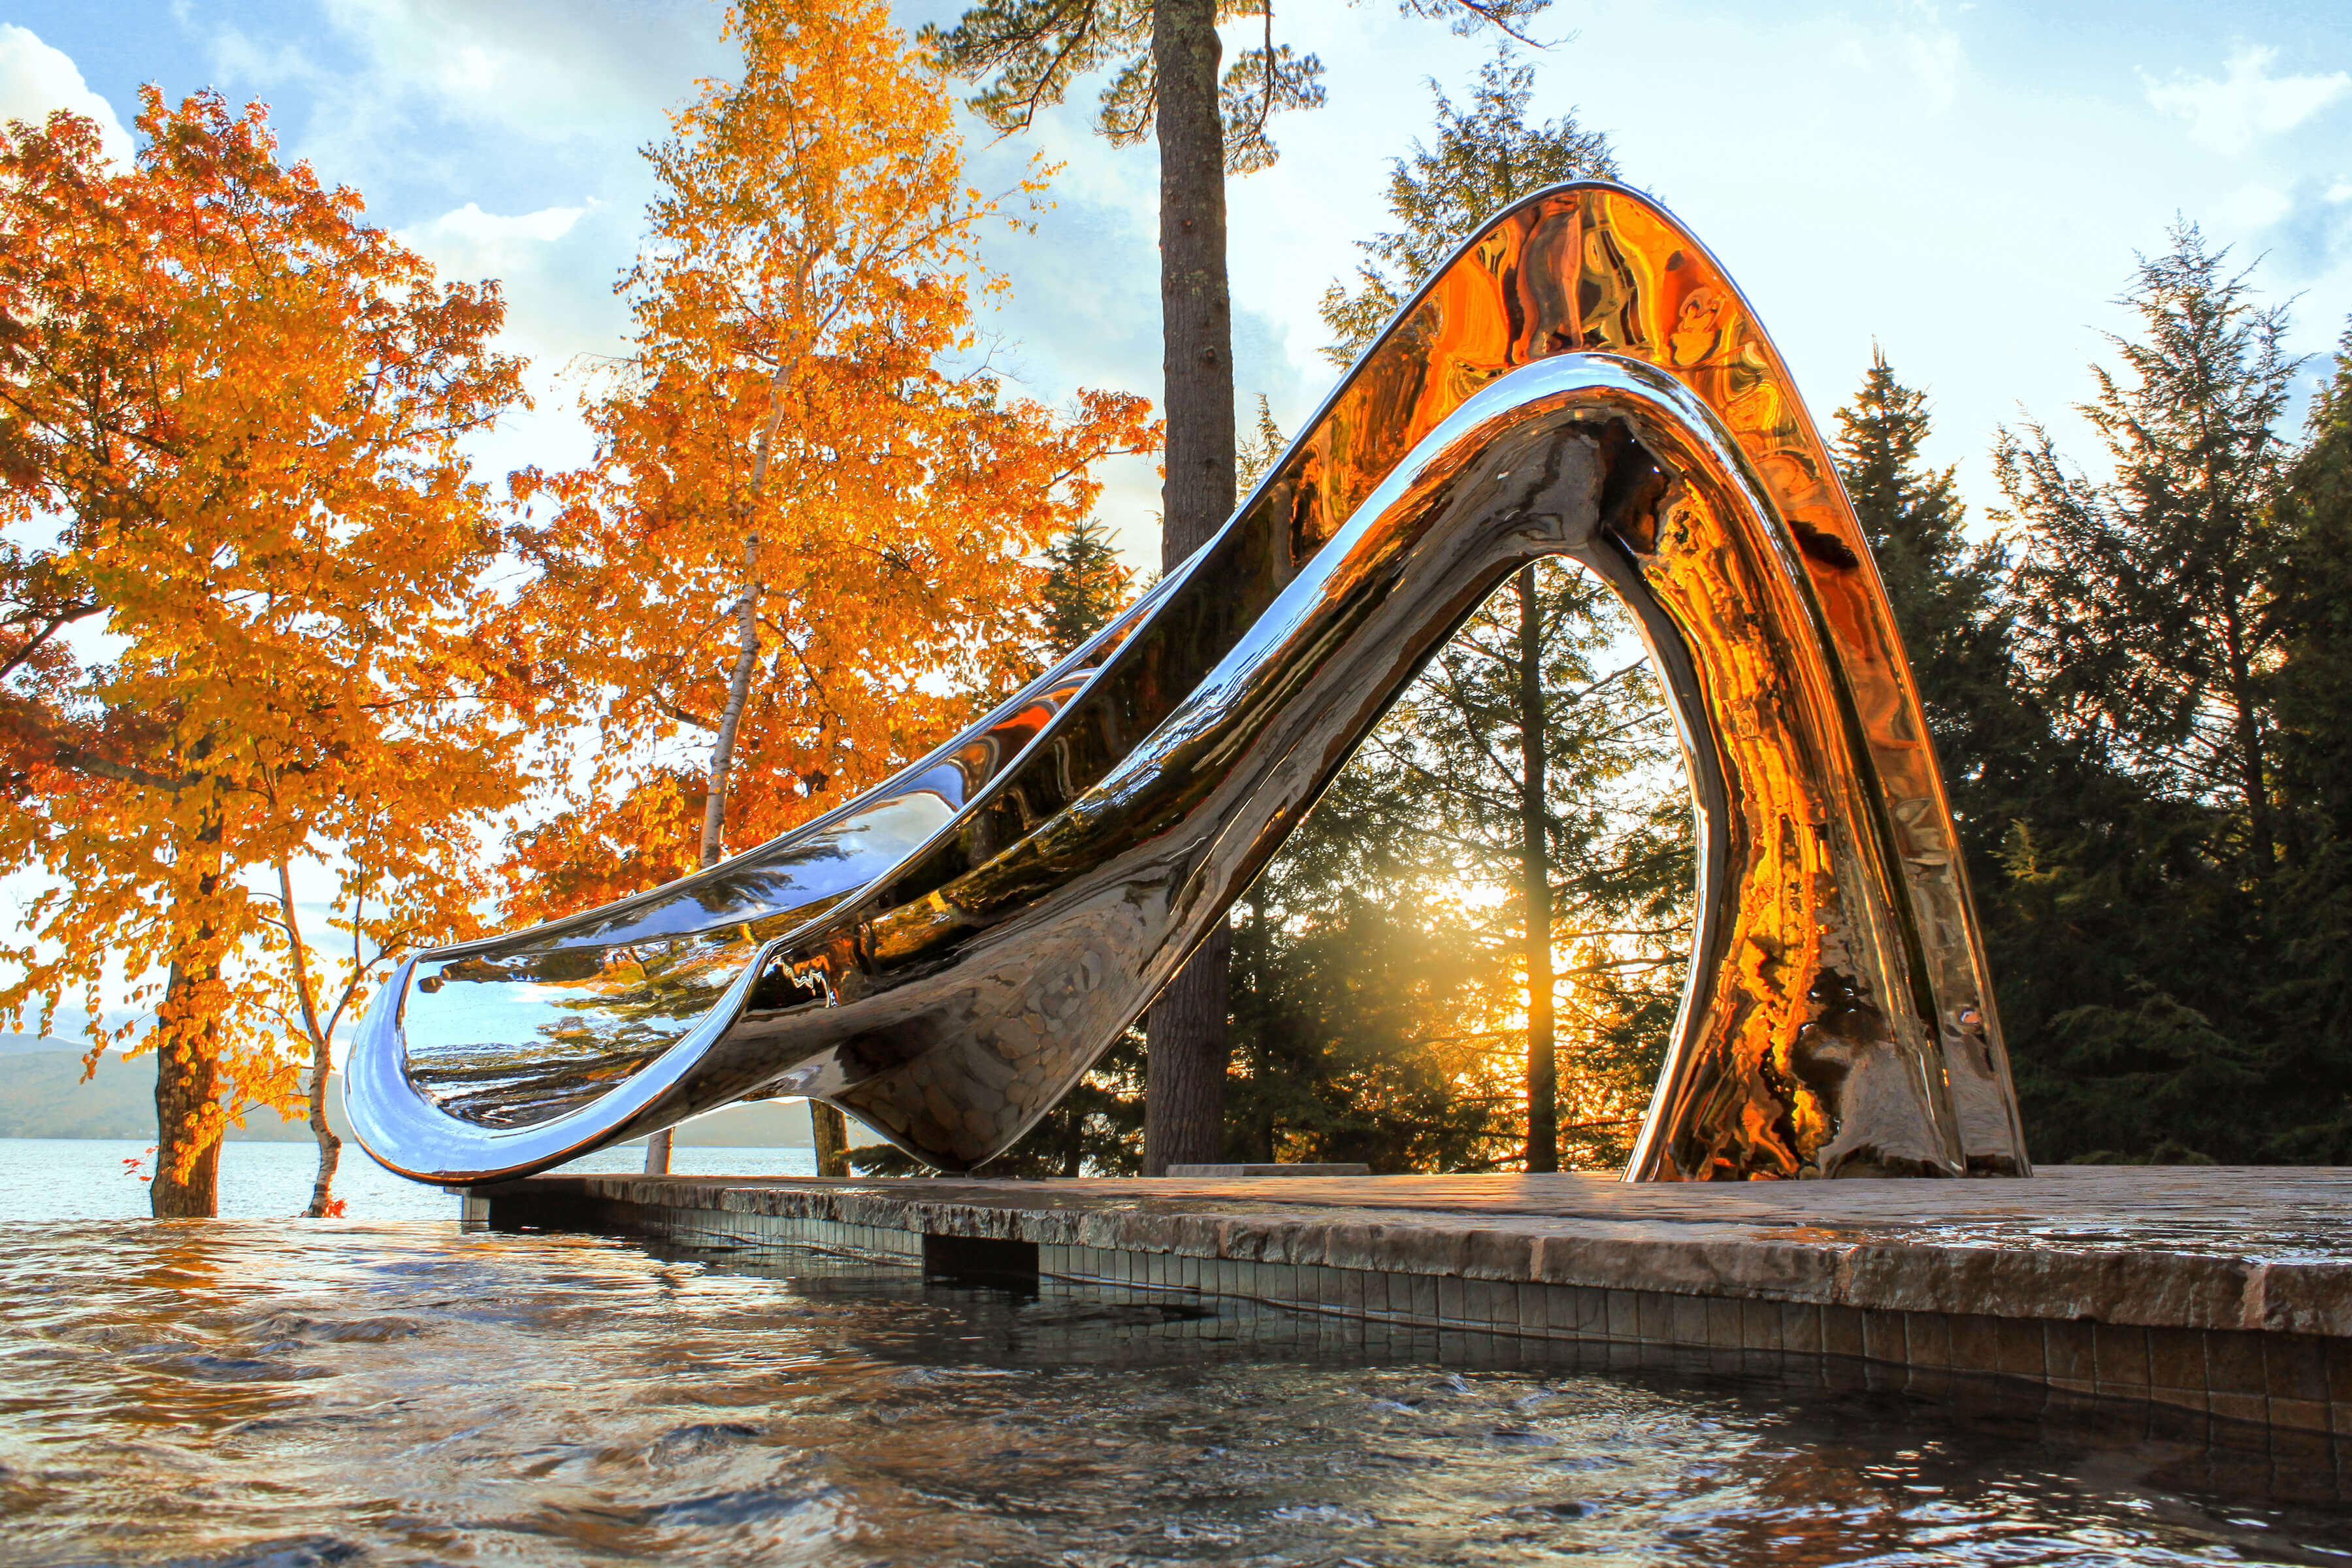 Vertex pool slide beside lake in fall